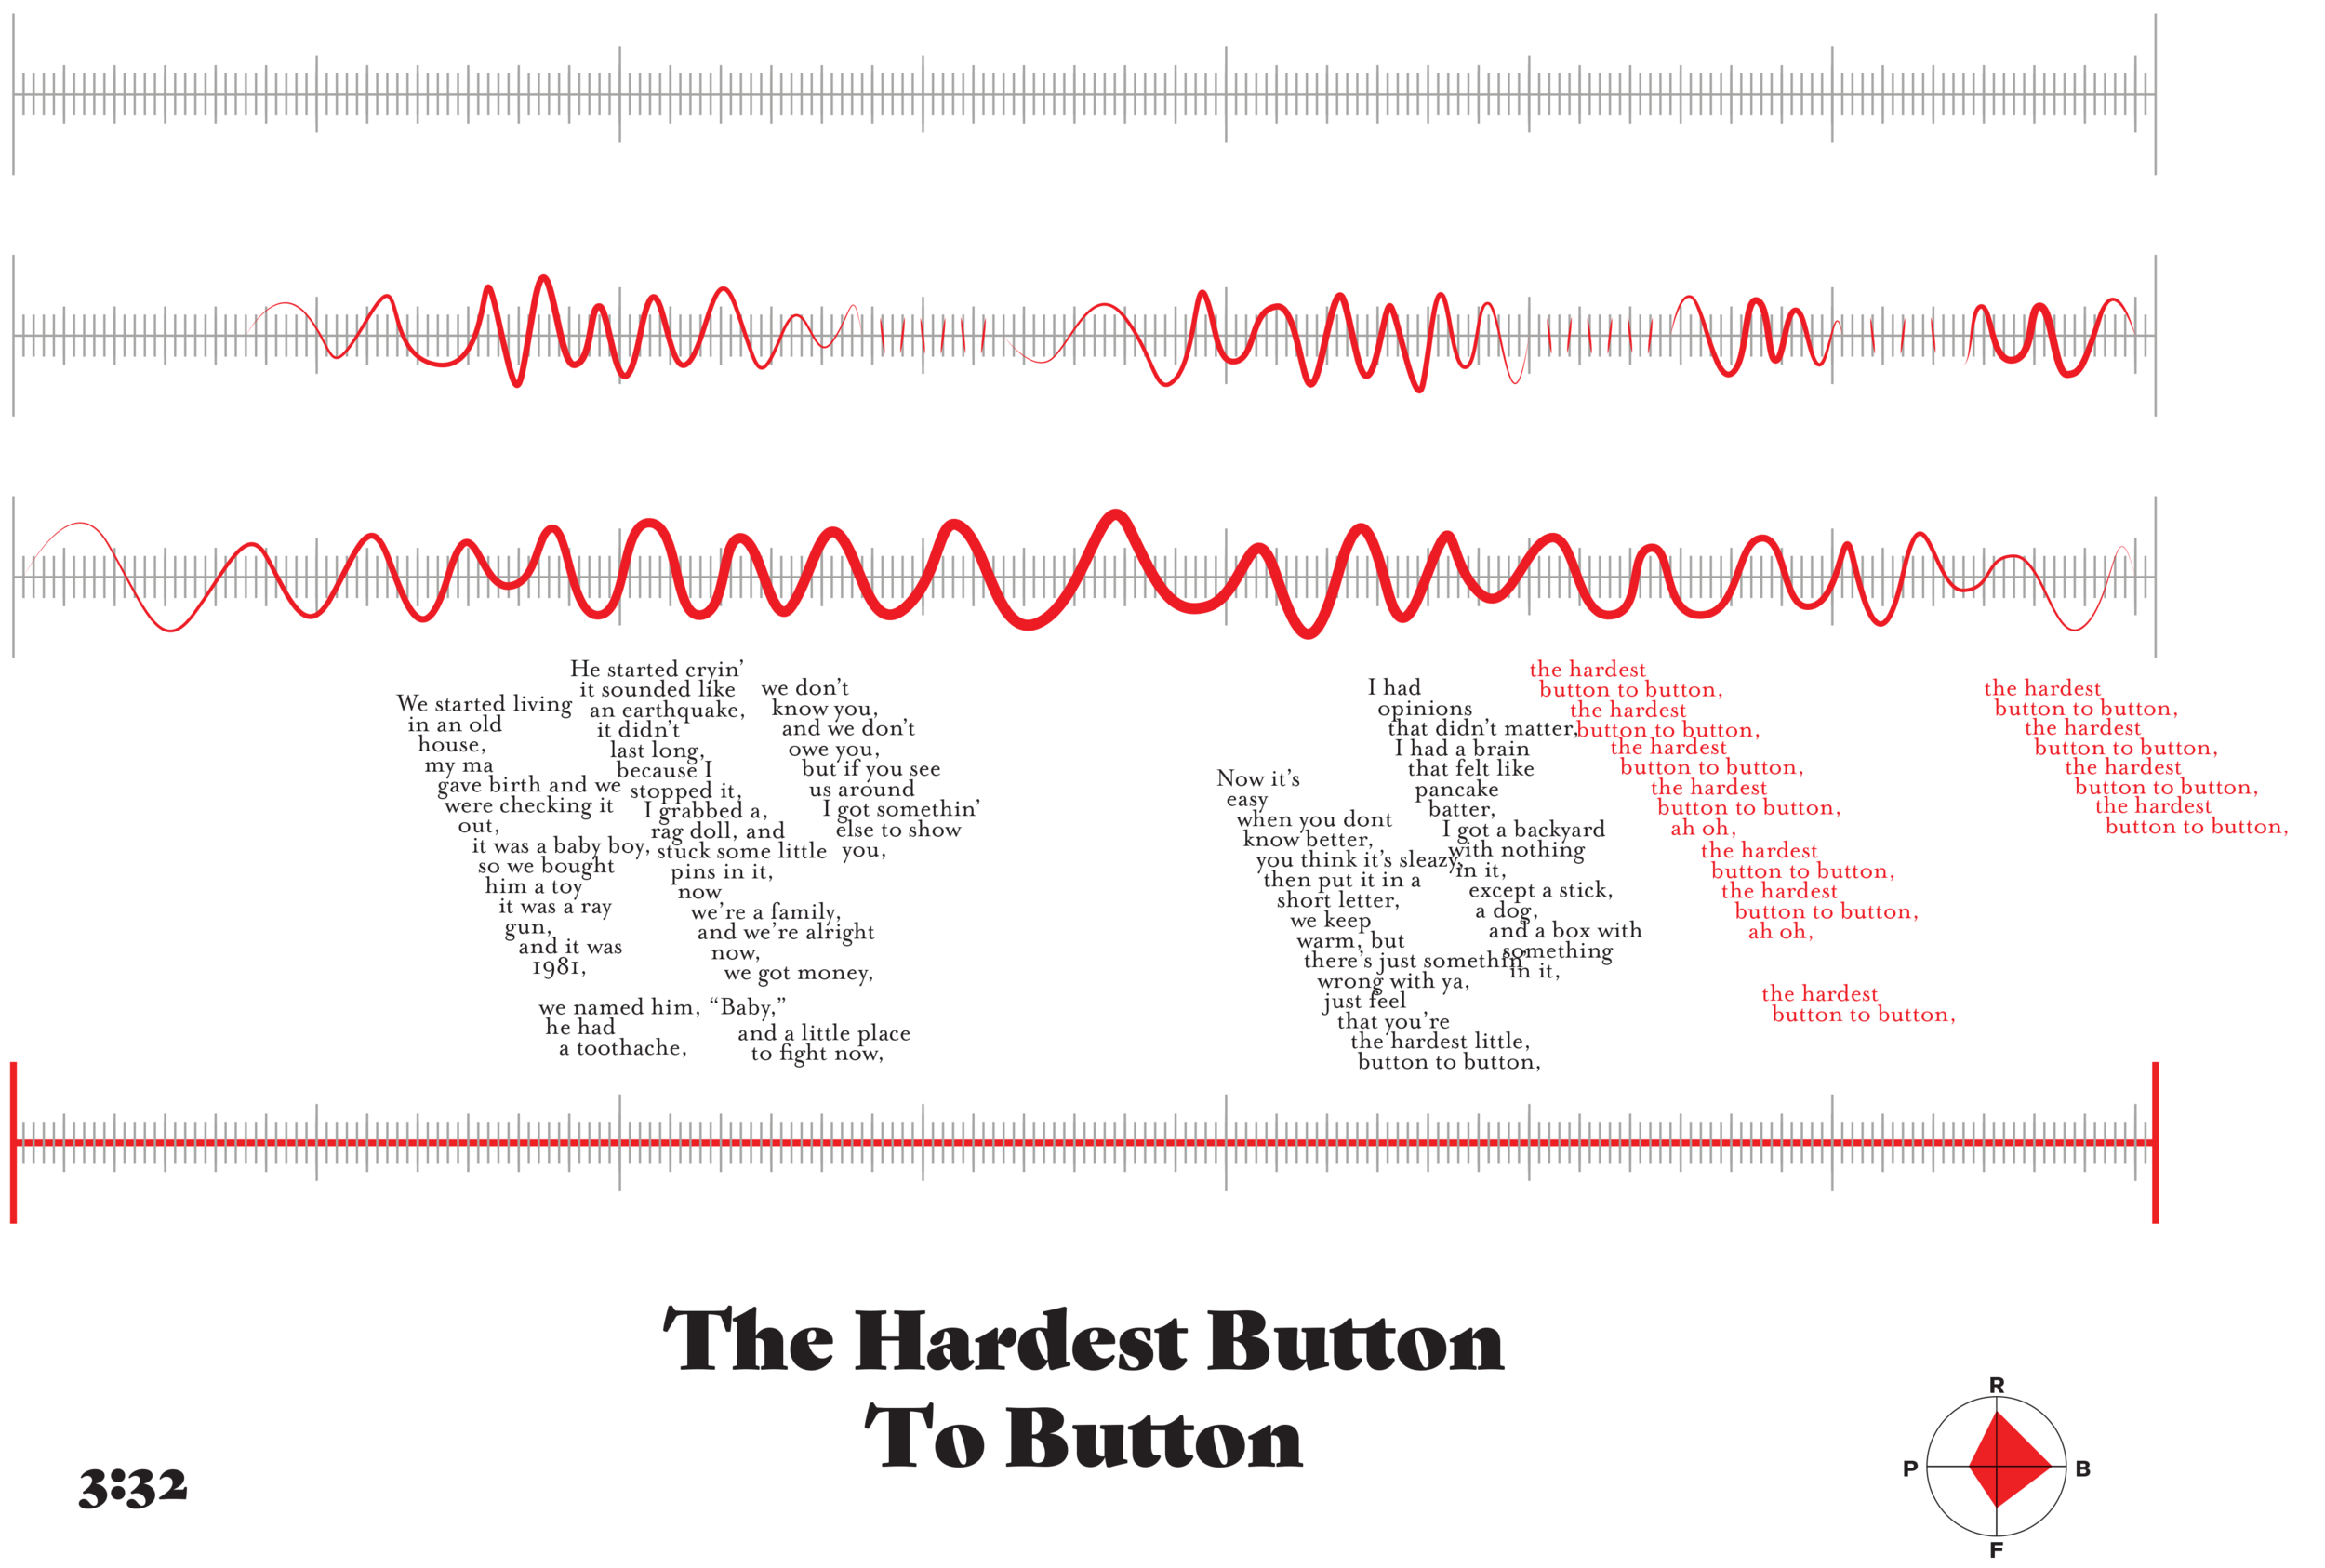 09 - Hardest Button To Button.png